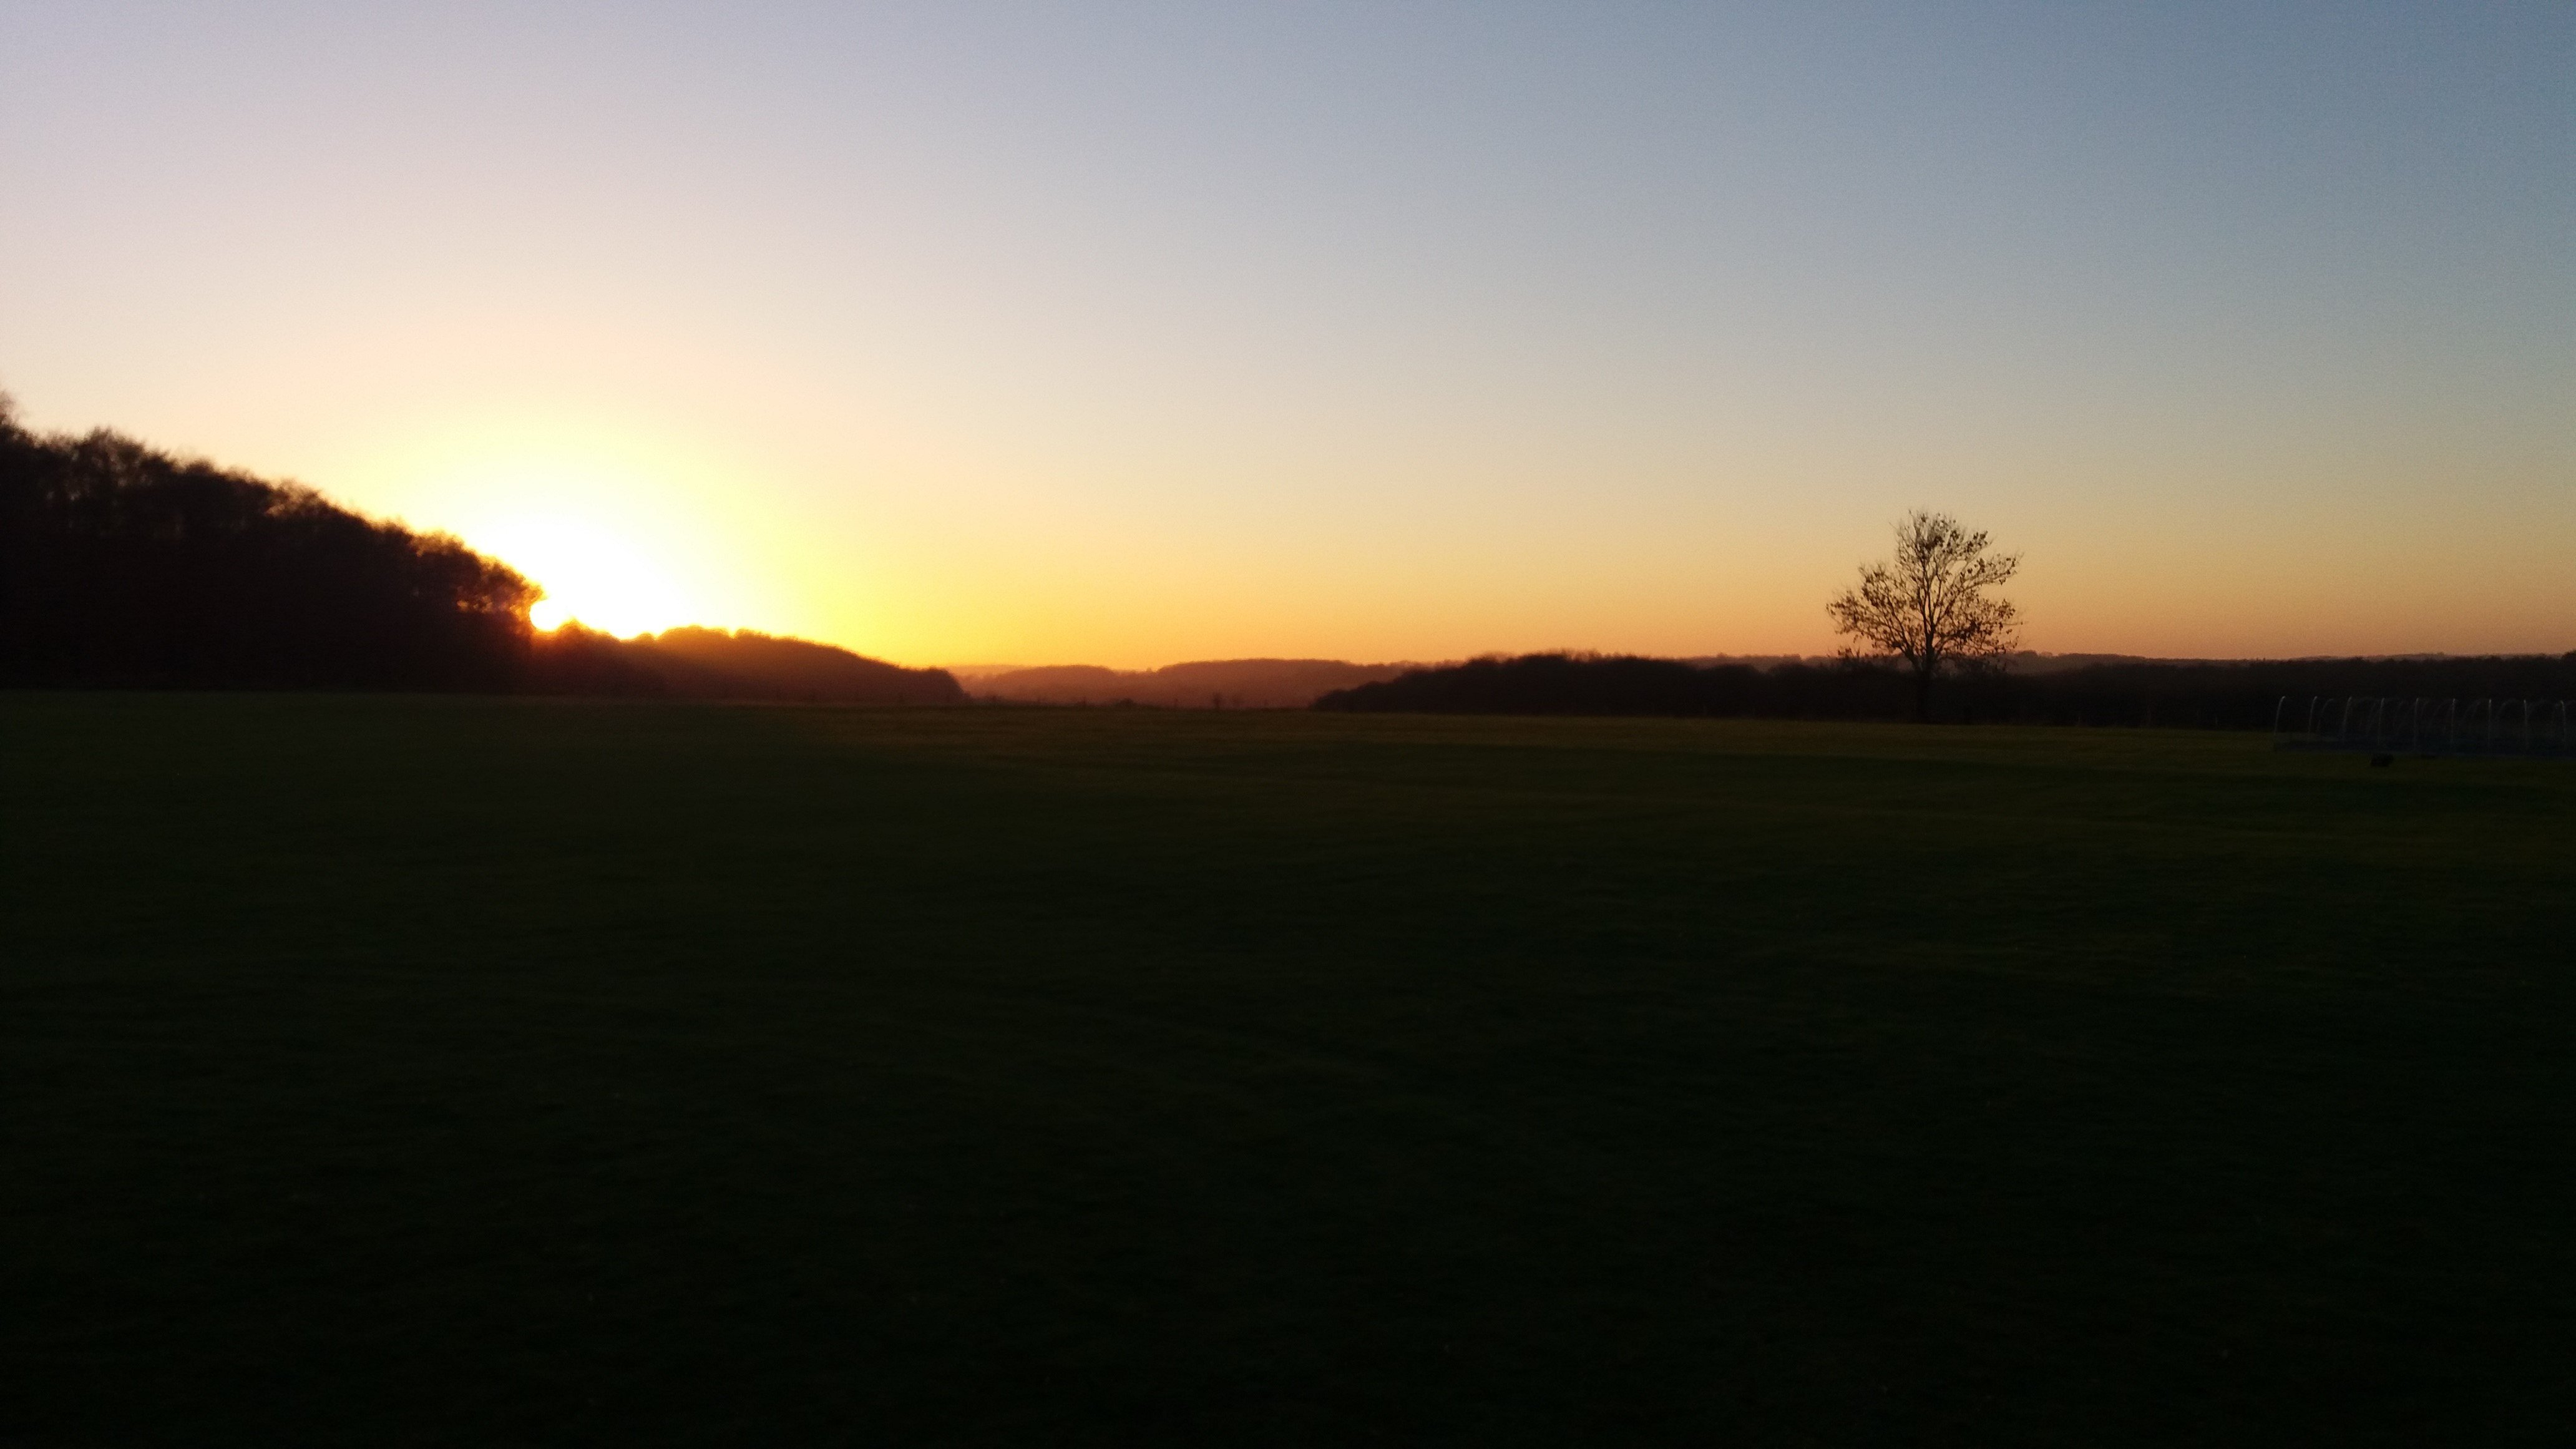 View of the sunset